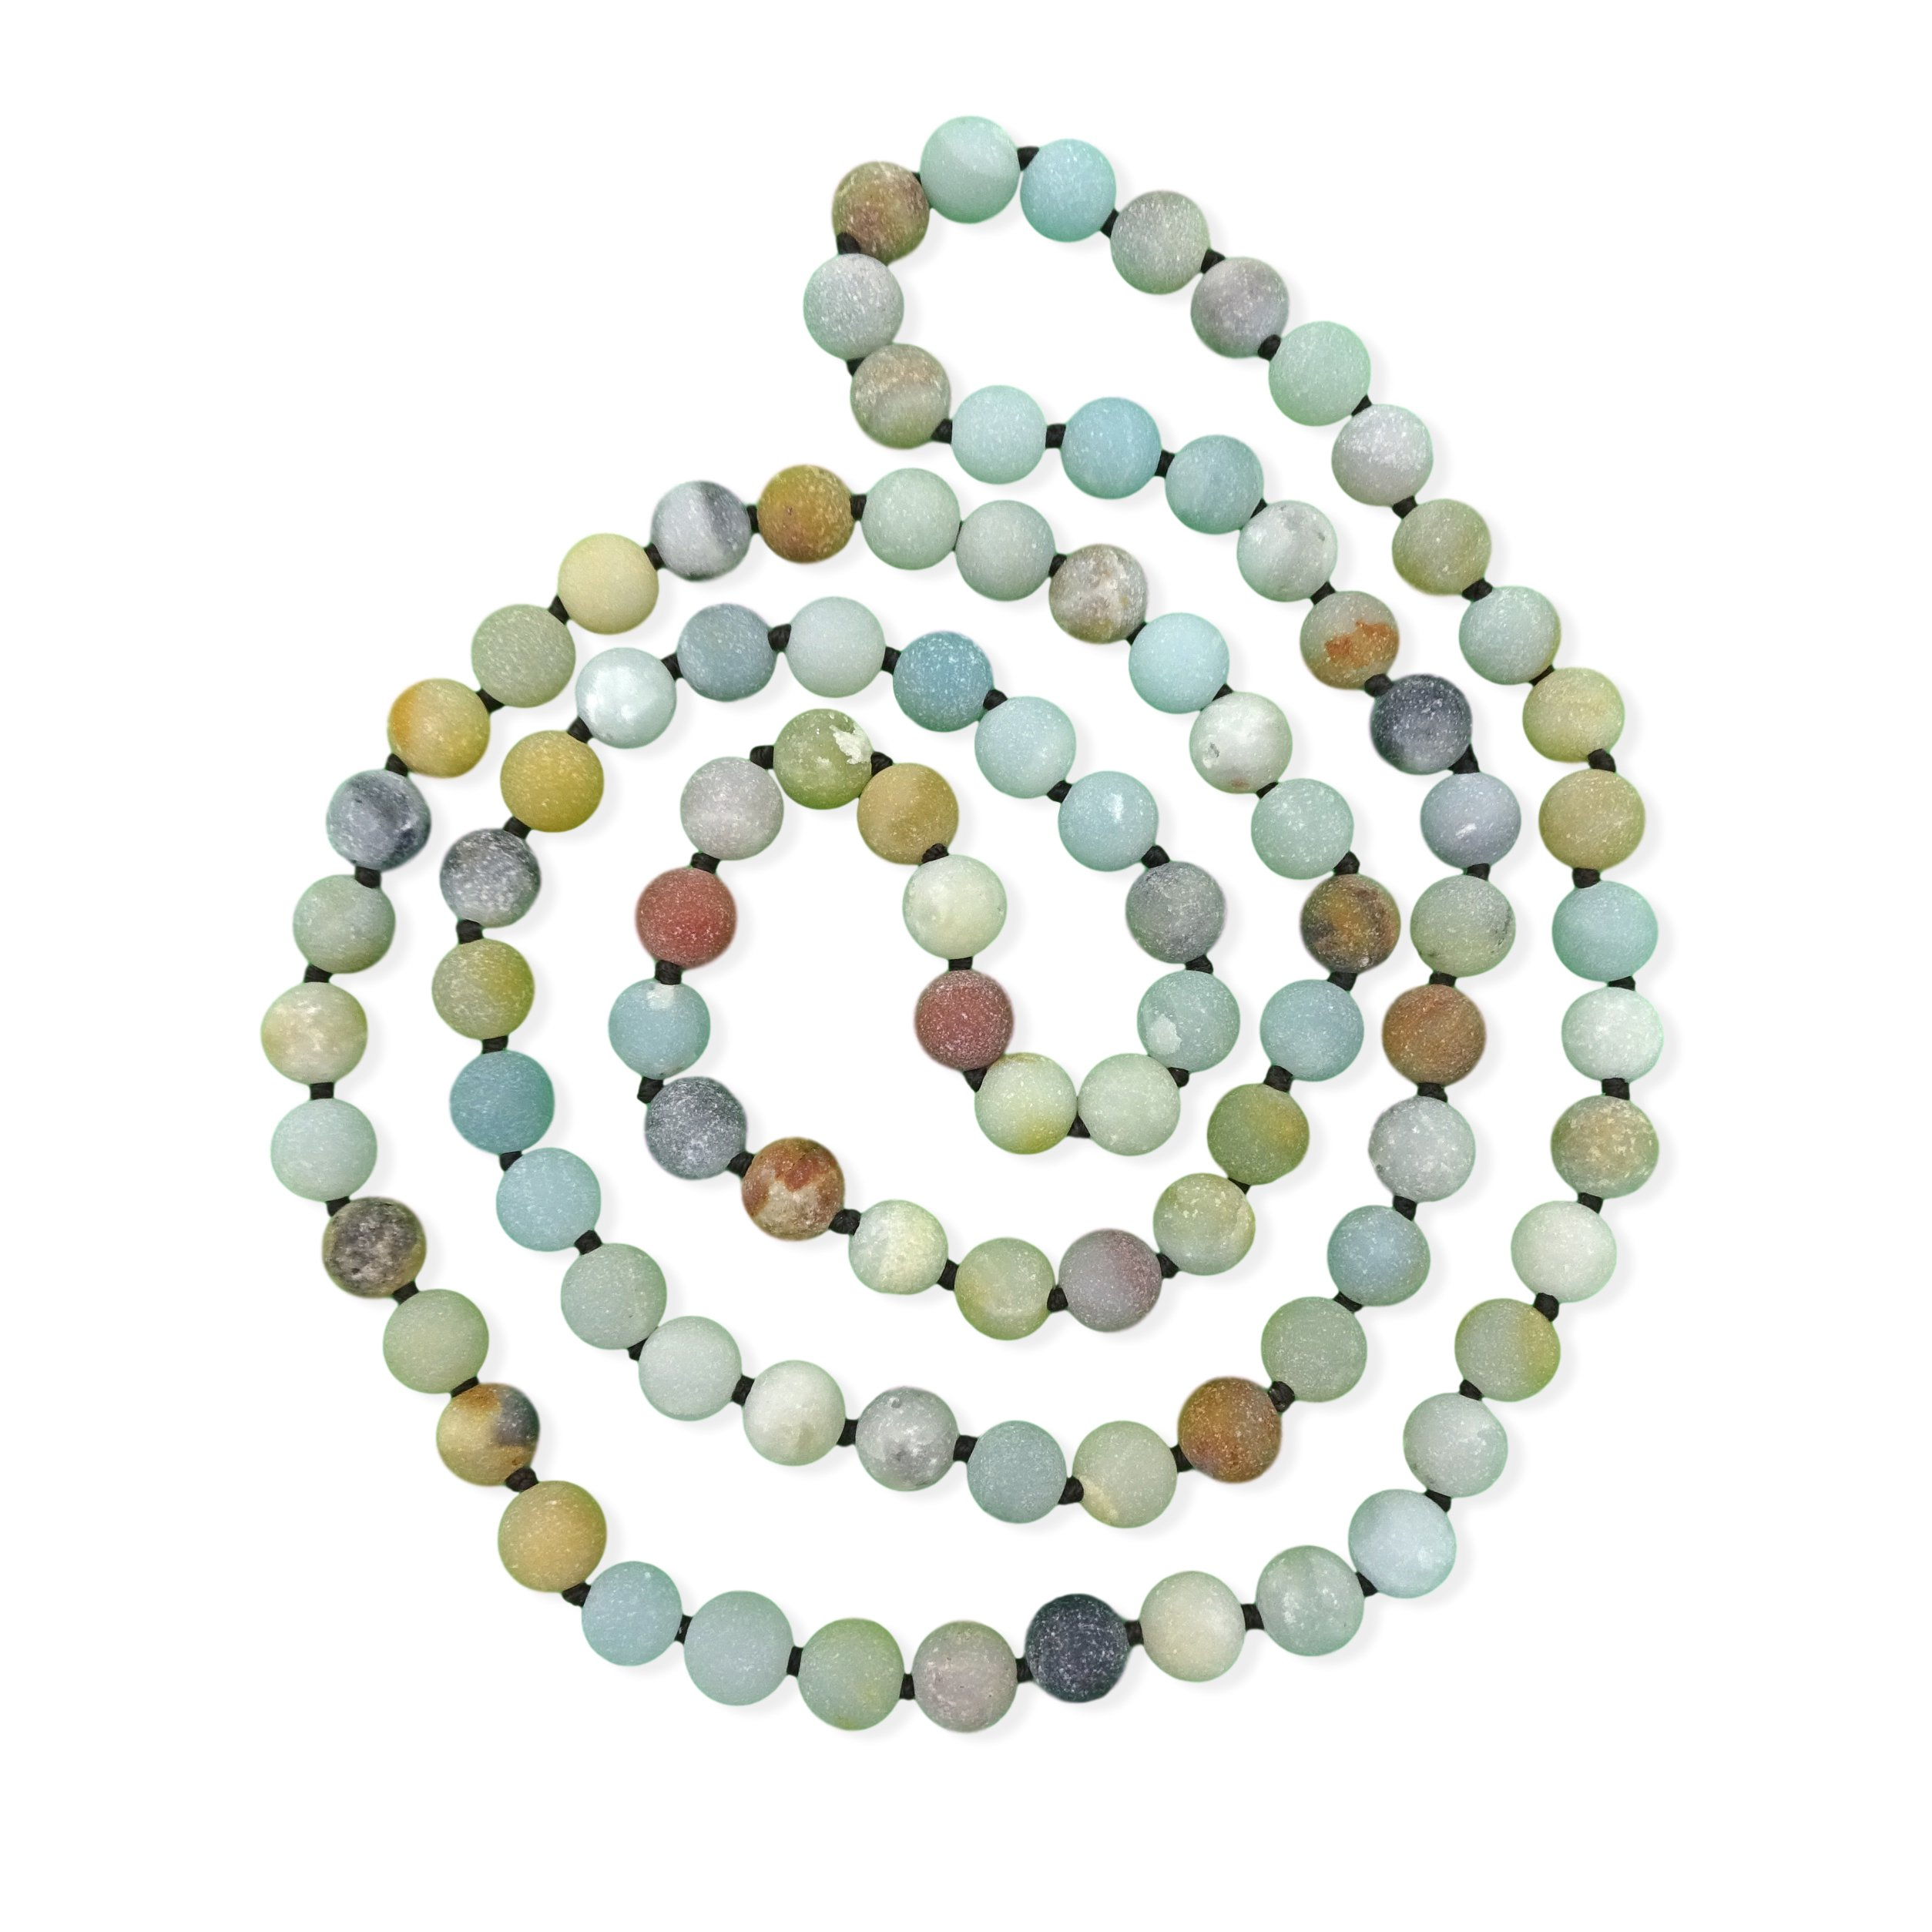 36 Inch 8MM Matte Finish Semi-precious Genuine Amazonite Long Endless Infinity Beaded Strand Necklace.